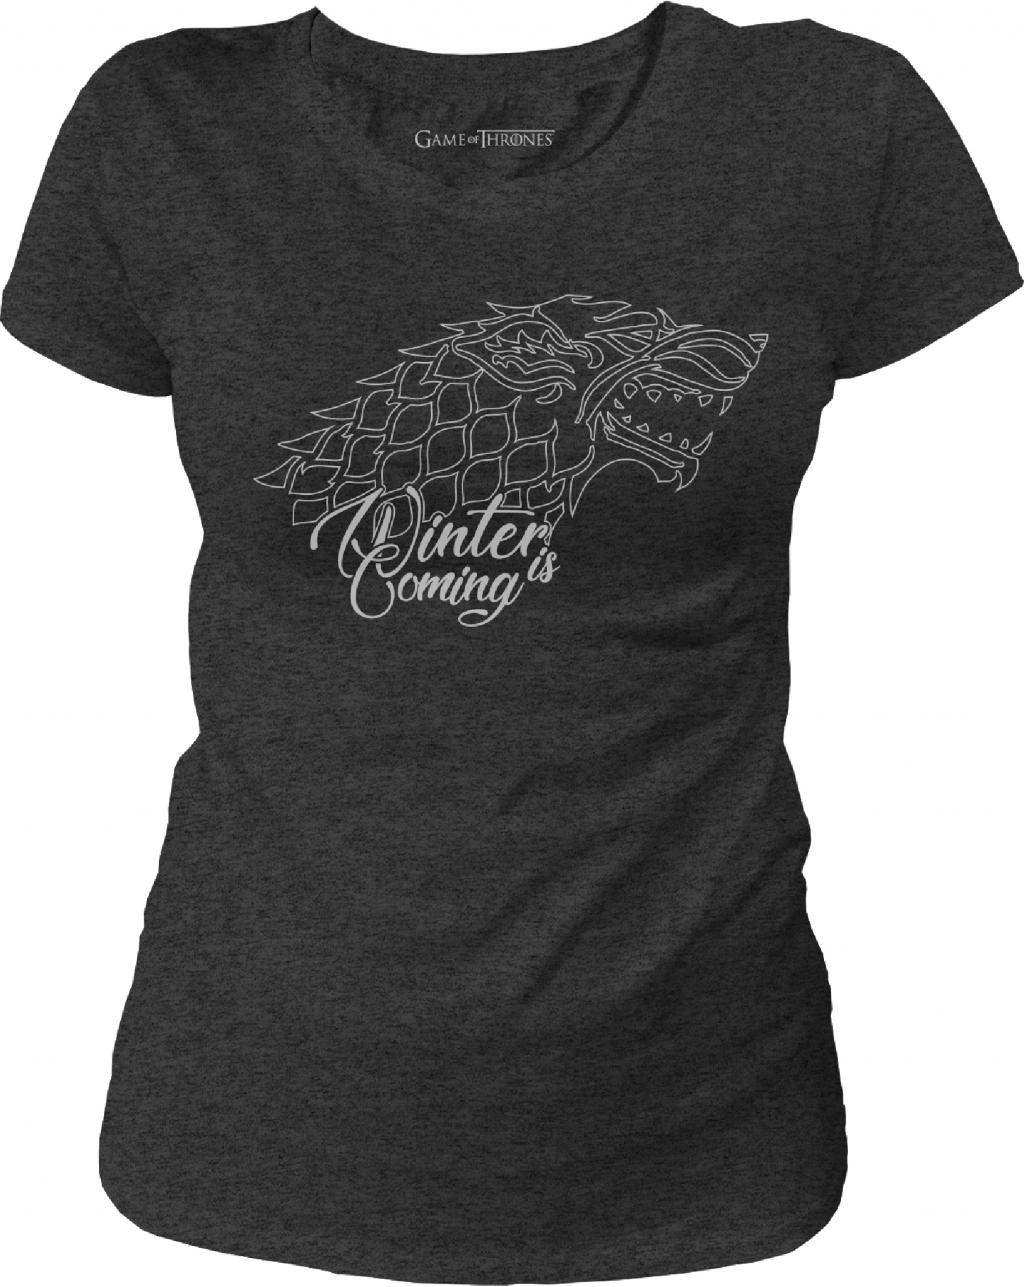 GAME OF THRONES - T-Shirt Stark Winter is Coming - GIRL (S)